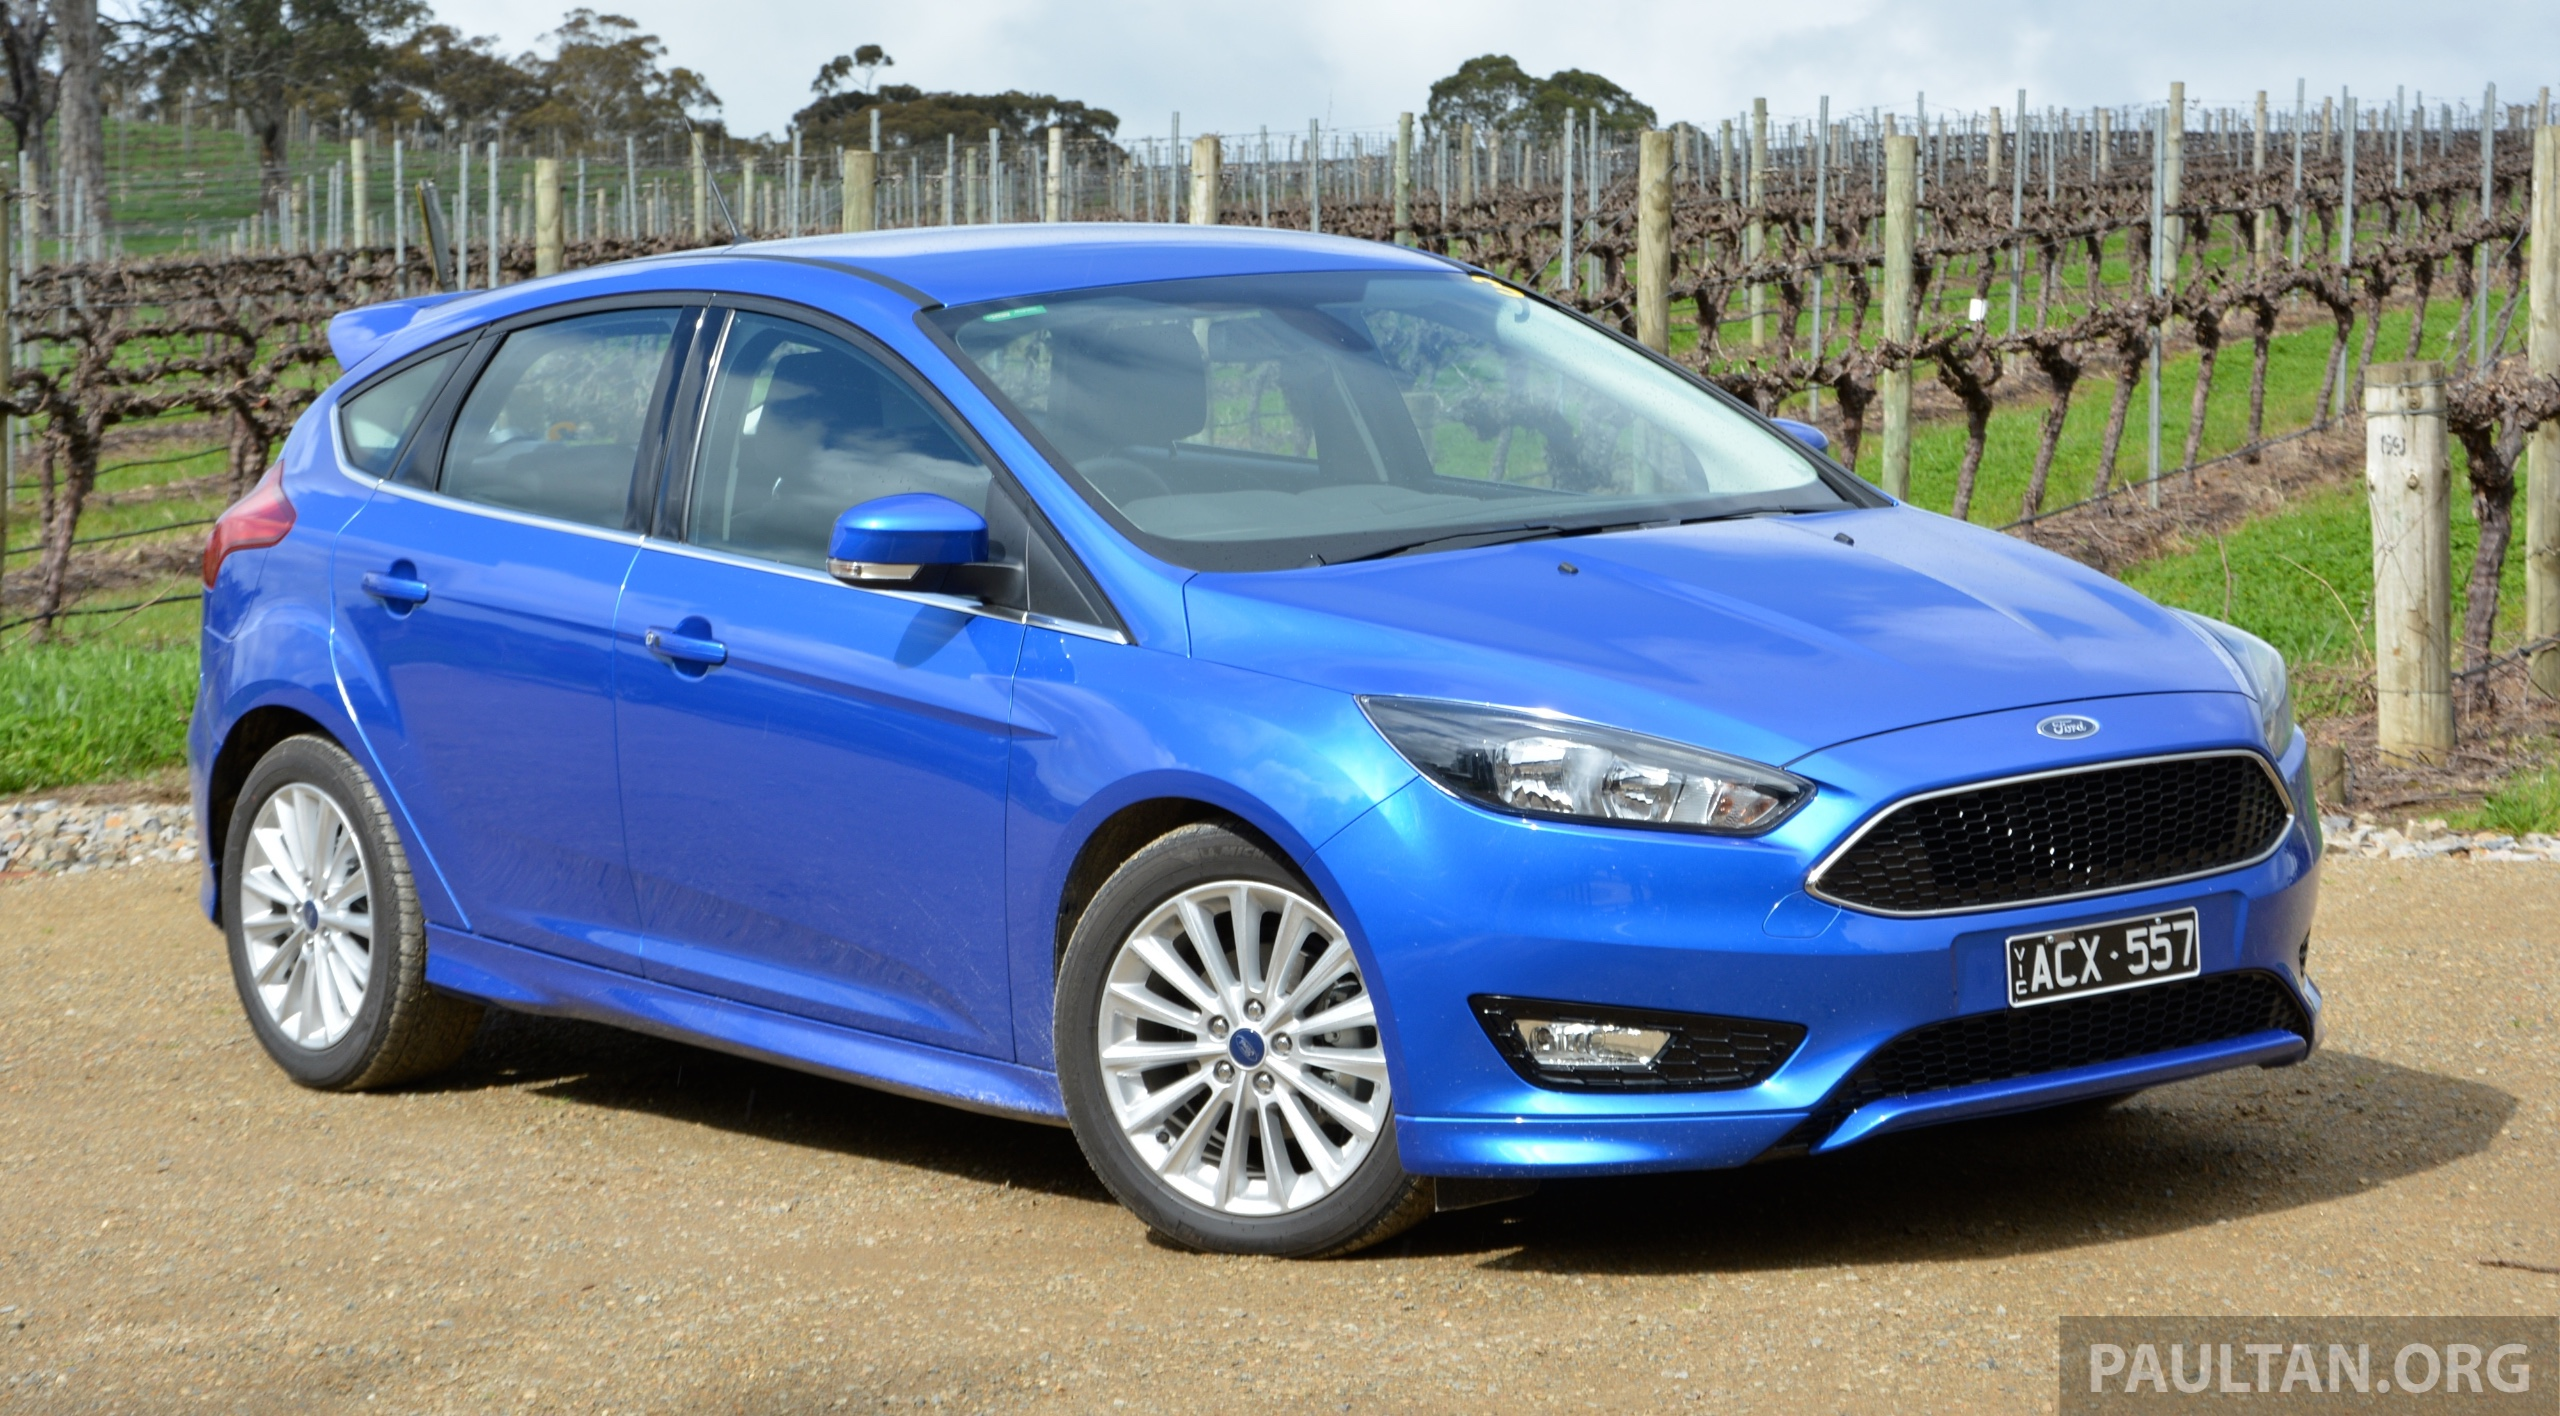 DRIVEN: C346 Ford Focus 1.5L EcoBoost in Adelaide Image 377319